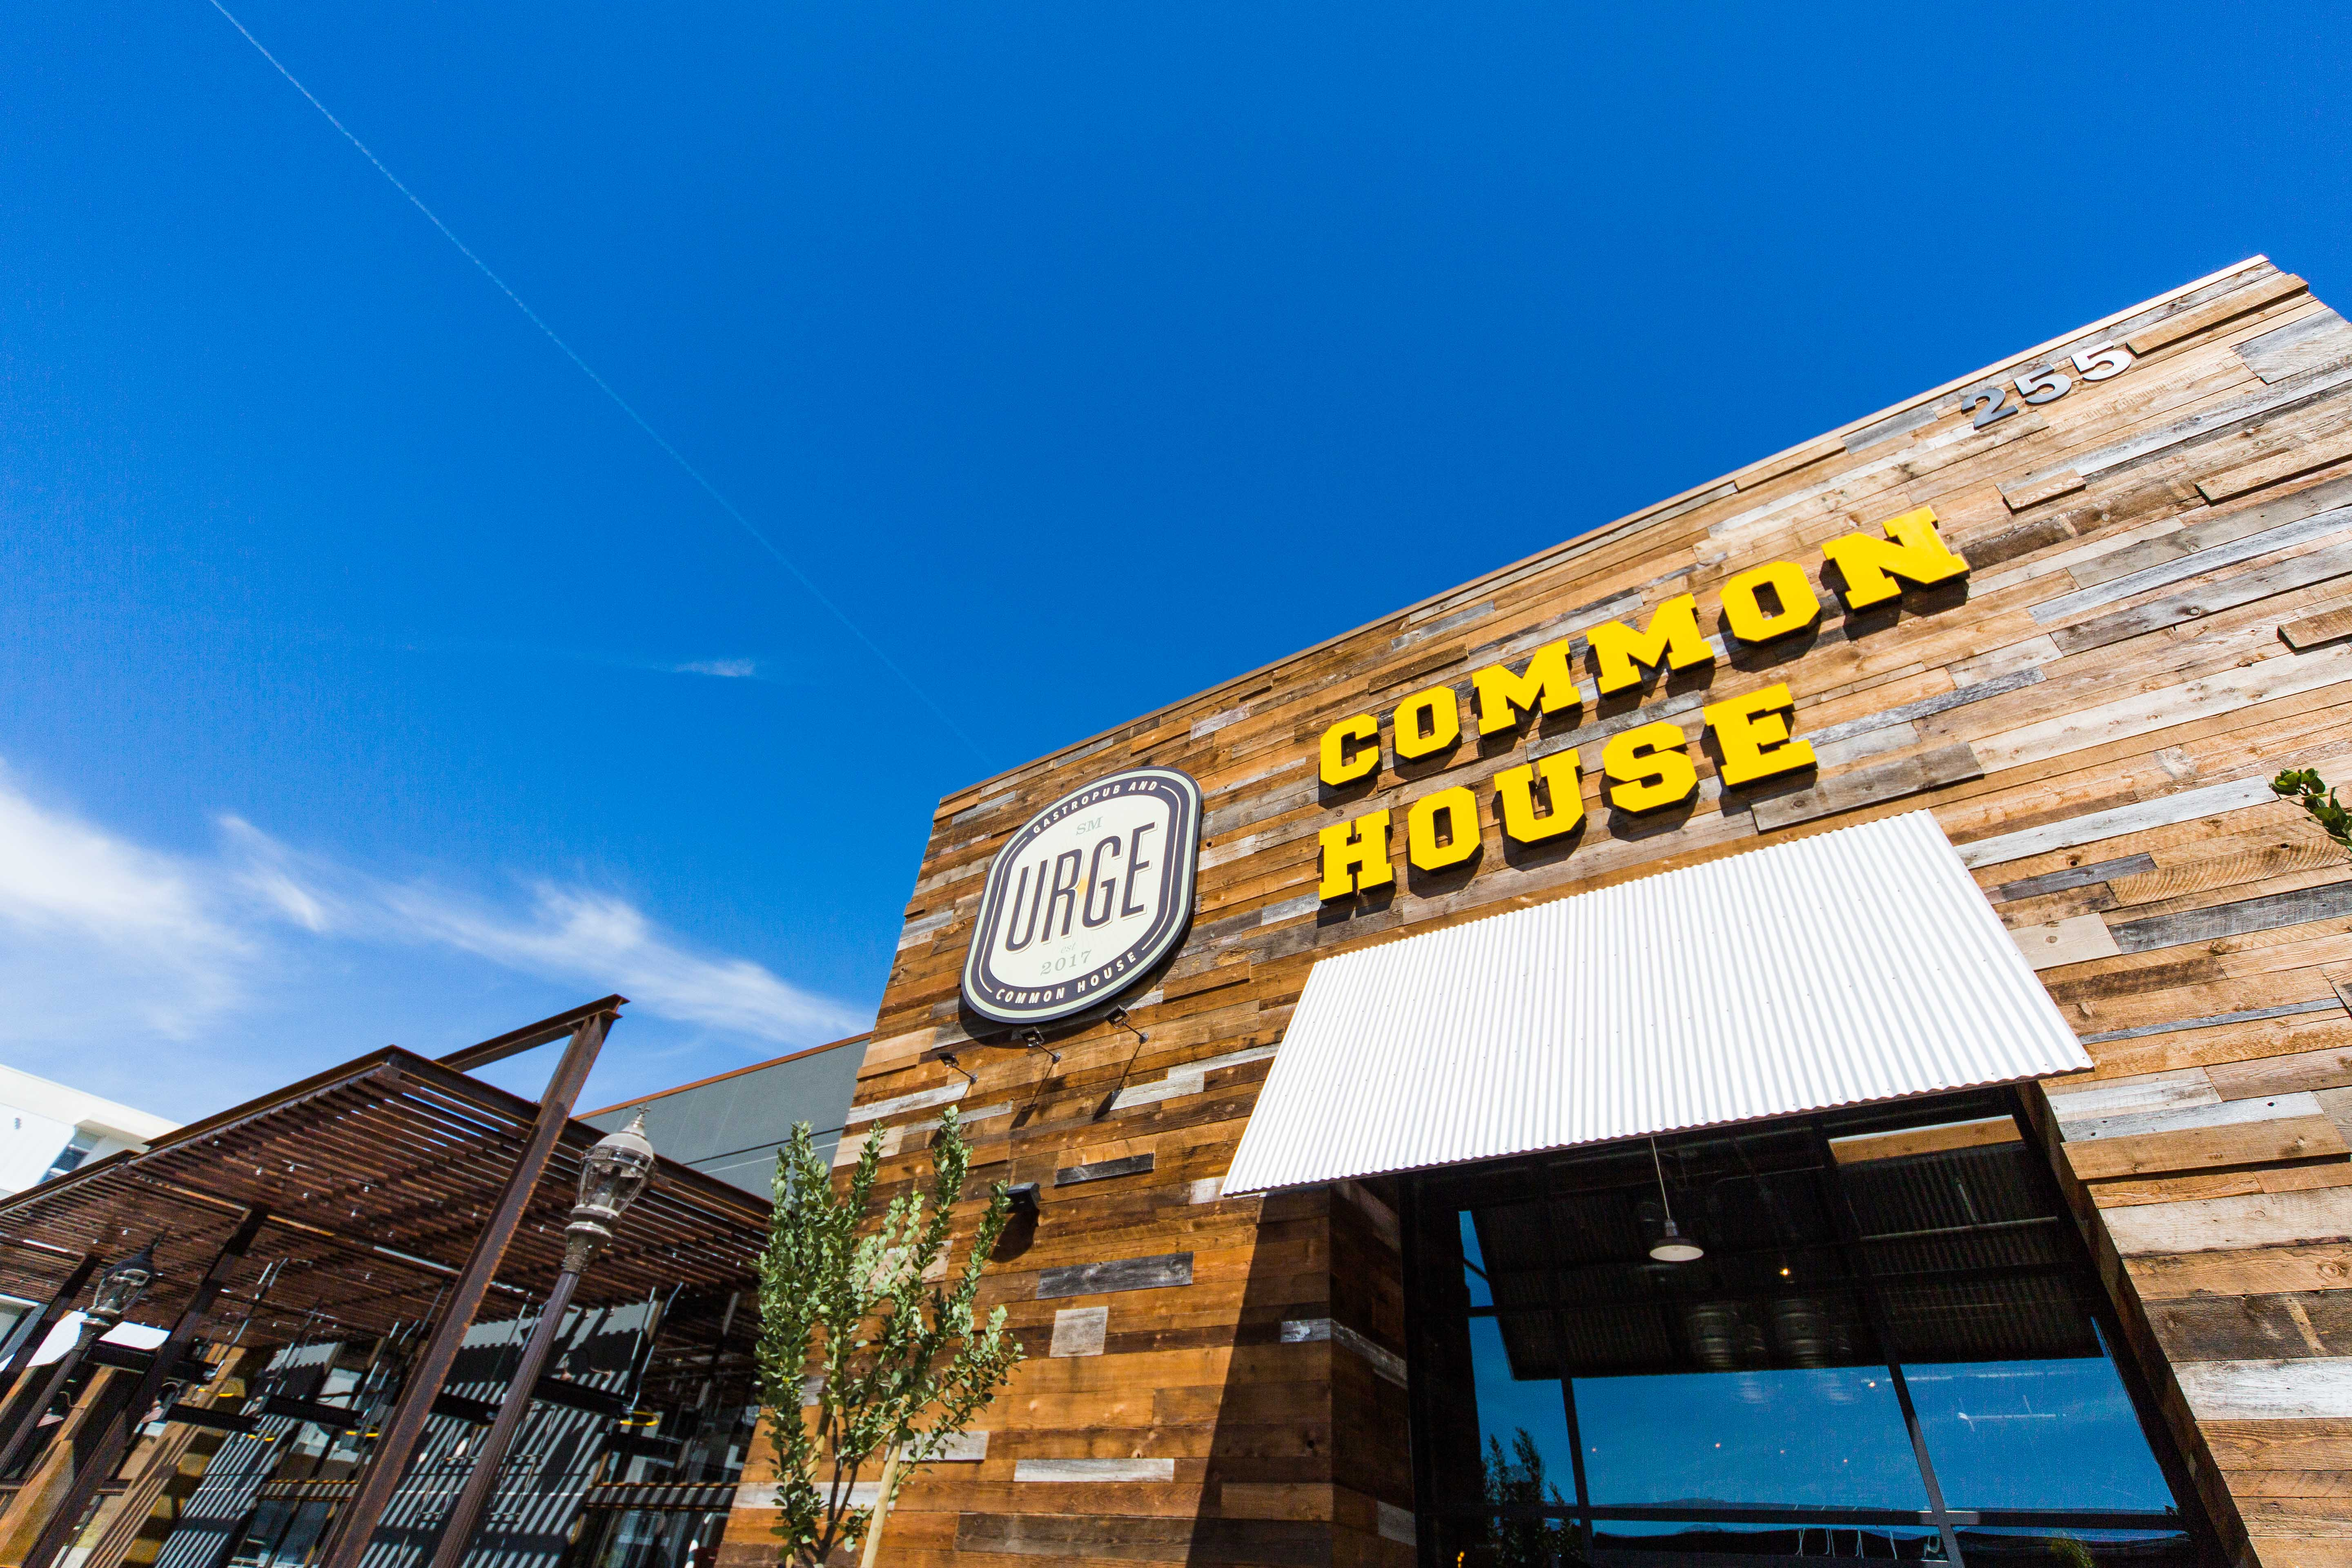 Urge Gastropub and mon House Drops the Mike in San Marcos With